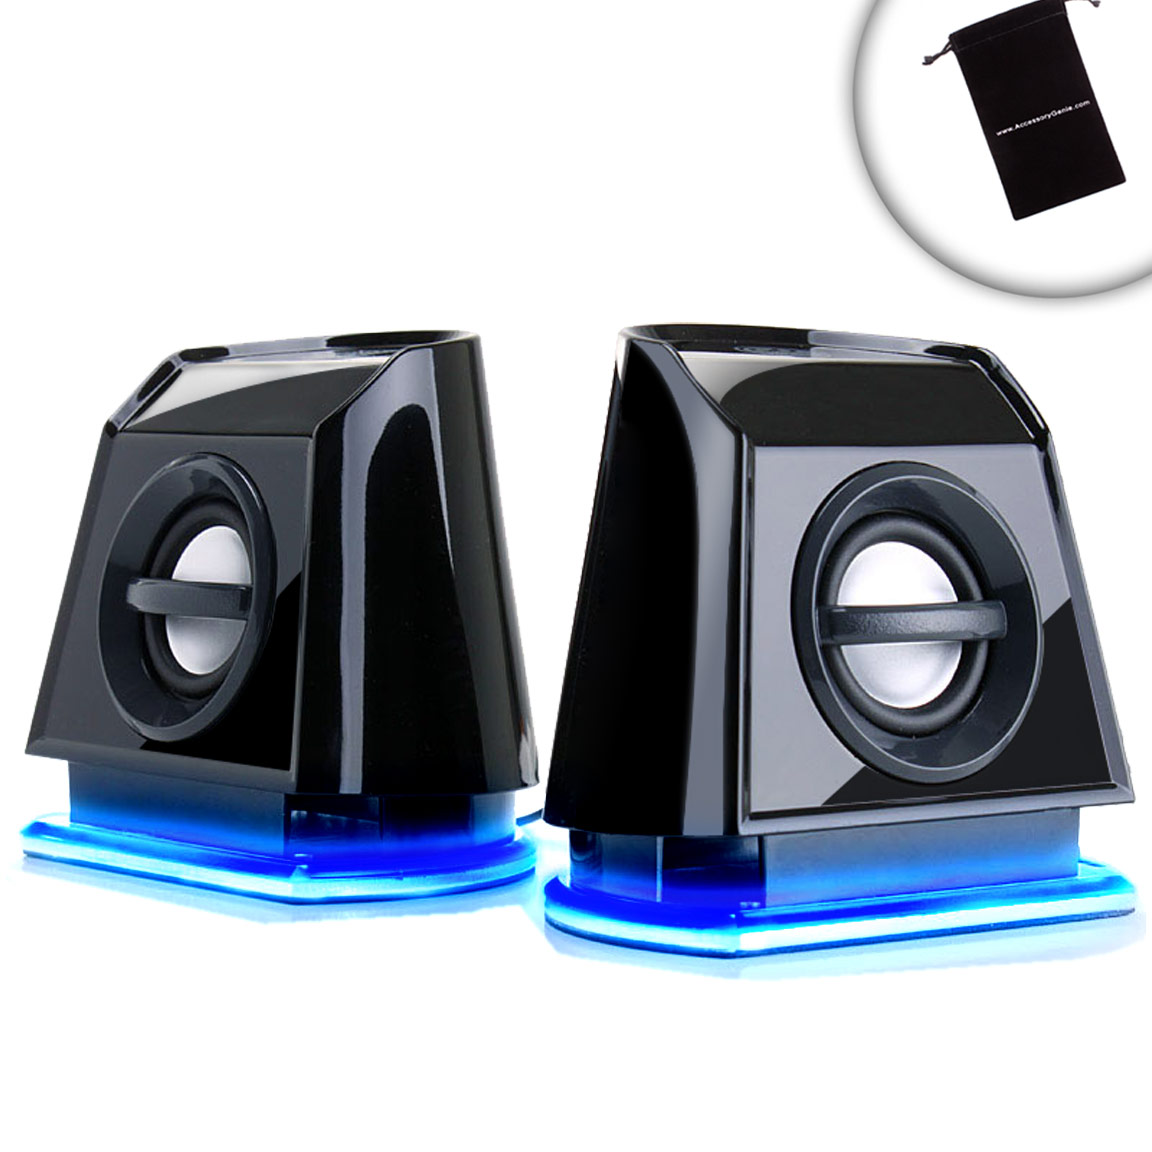 gogroove basspulse 2mx portable laptop speakers with plug. Black Bedroom Furniture Sets. Home Design Ideas